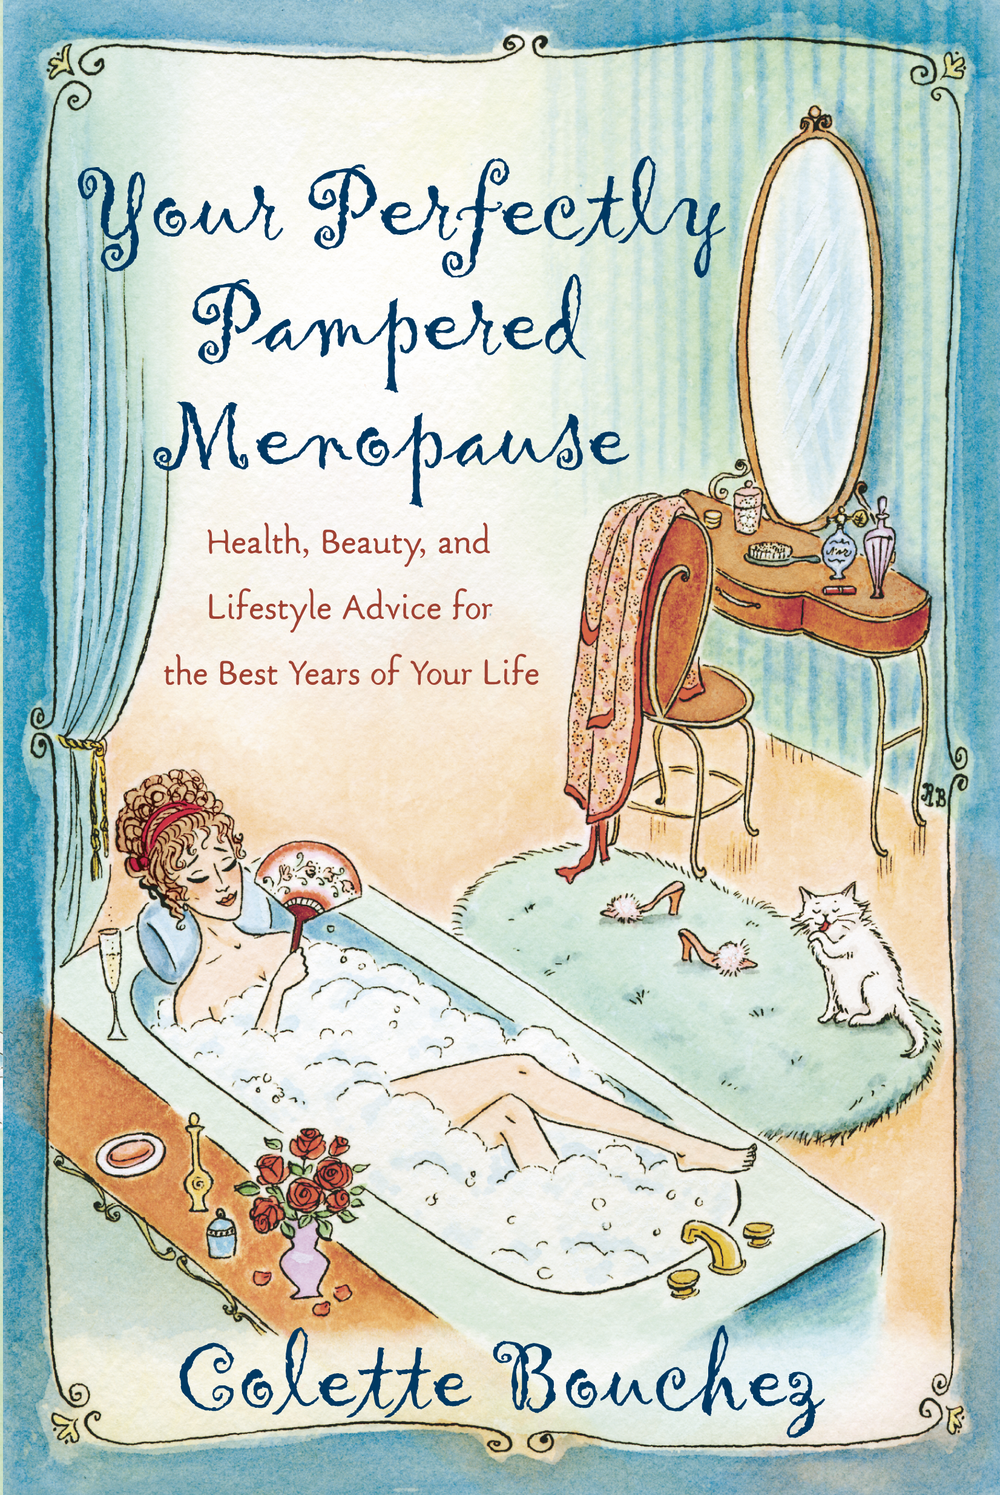 Collette Bouchez Perfectly Pampered Menopause